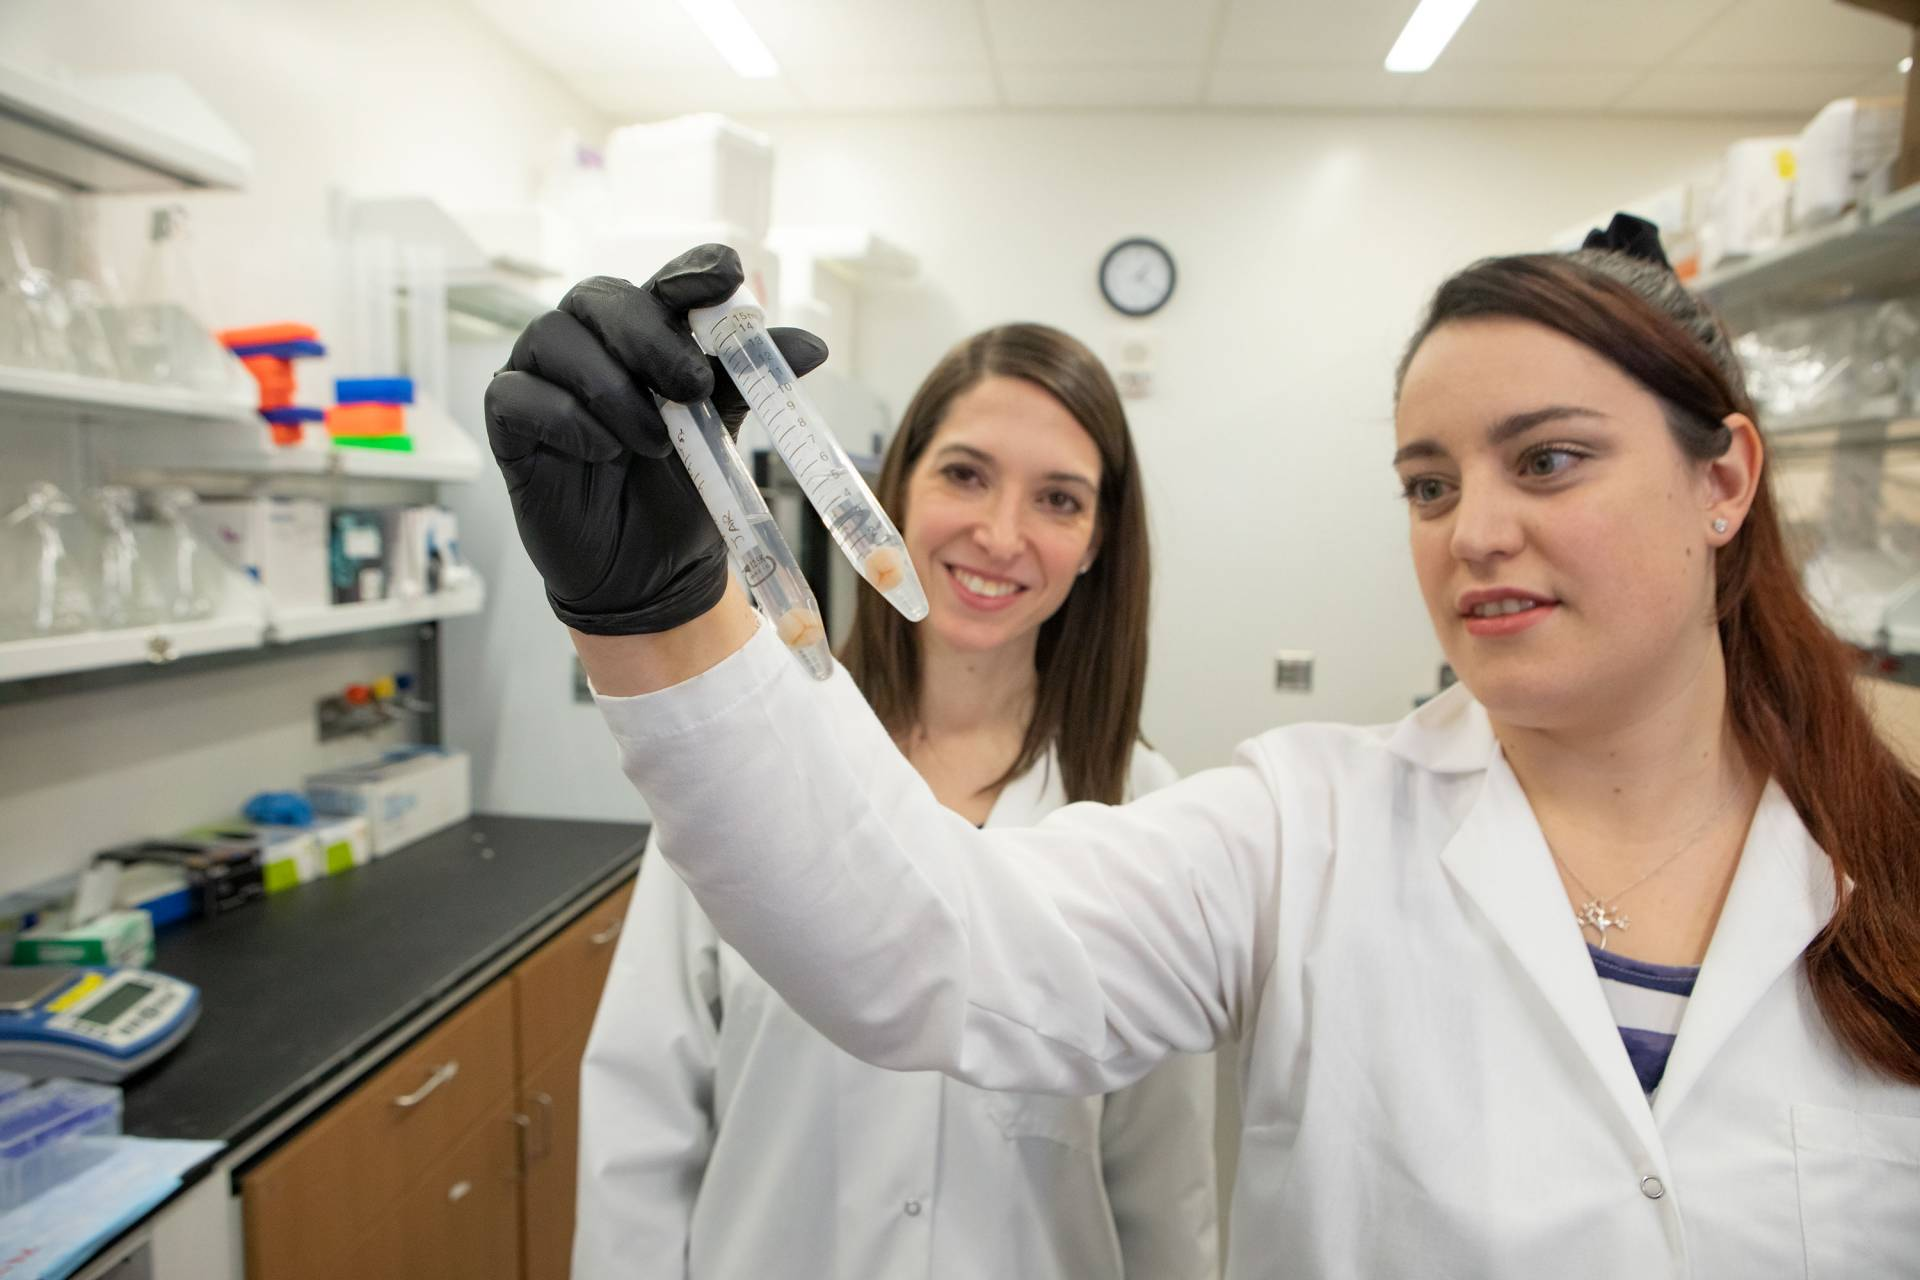 Two women in lab coats look at a test tube